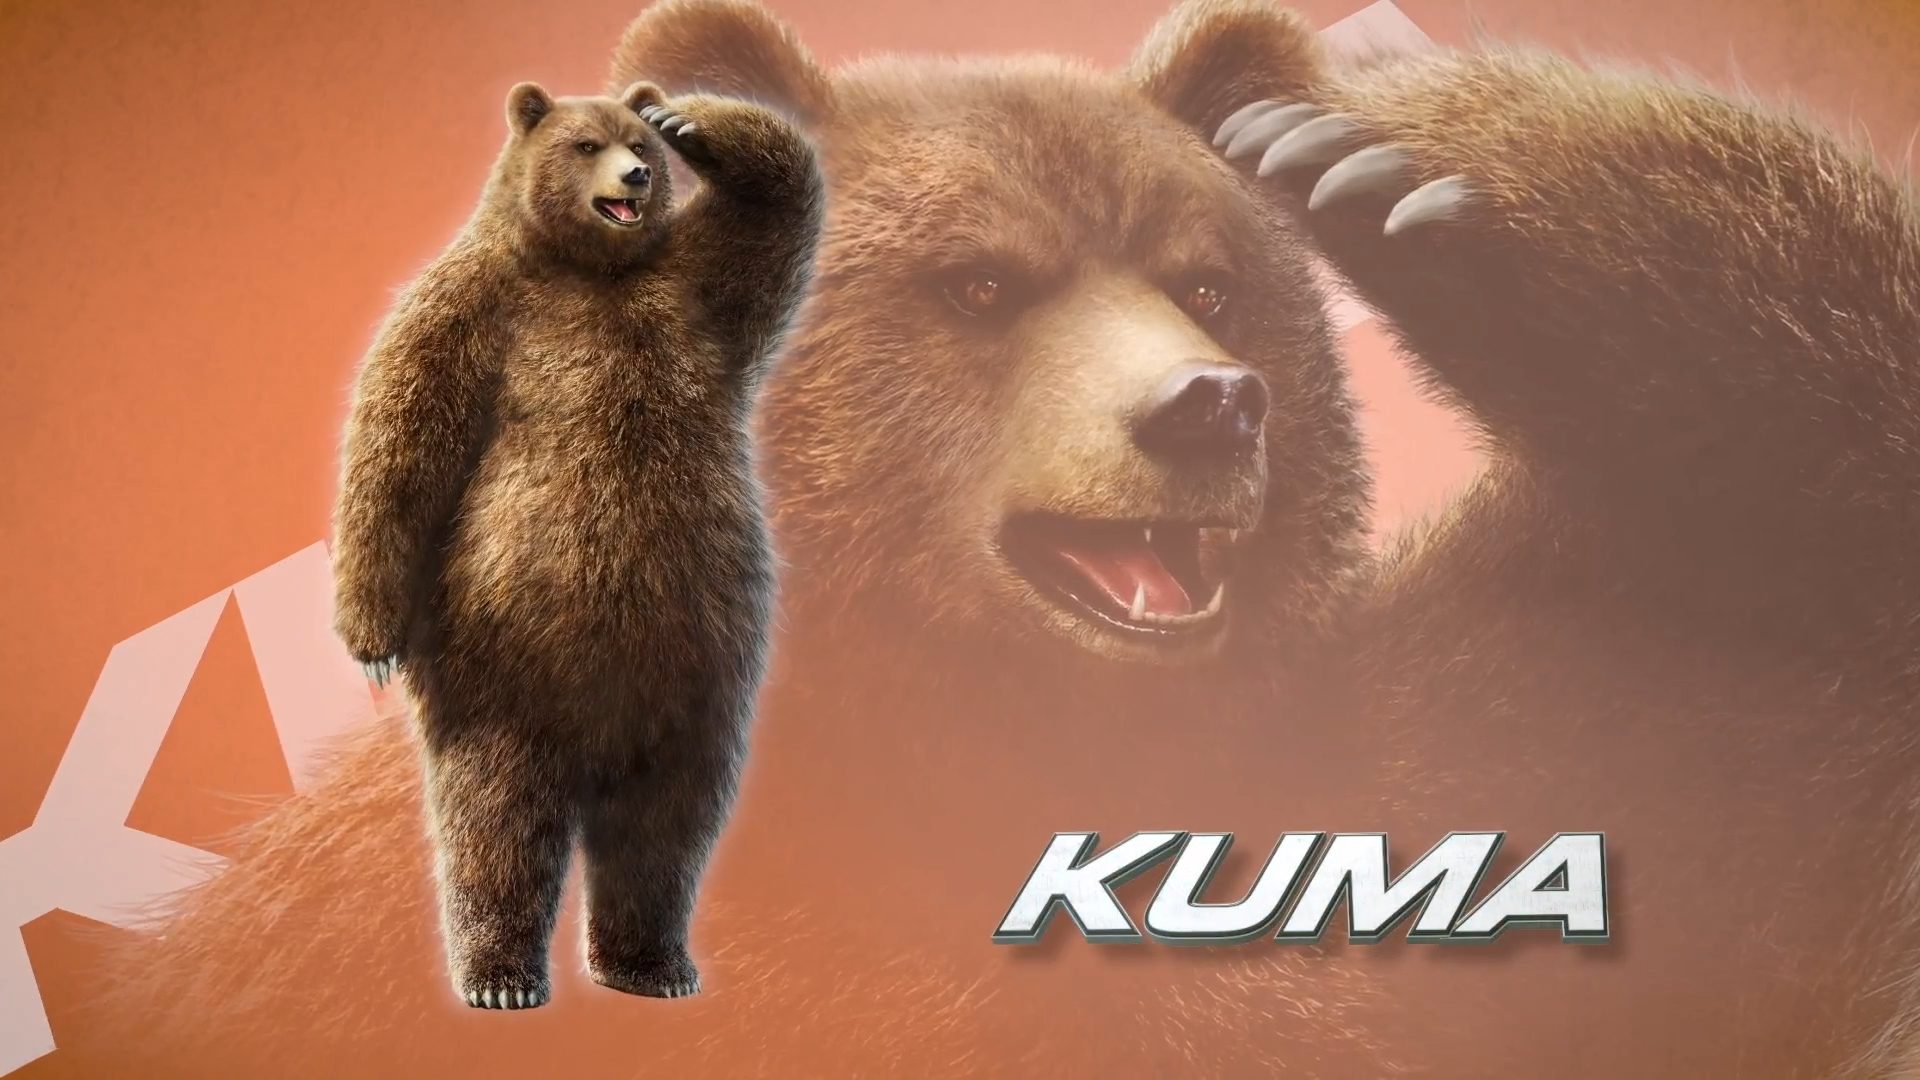 Kuma Panda Coming To Tekken 7 New Info On Online Tournaments Iplaywinner Fighting Game News Strategy Media